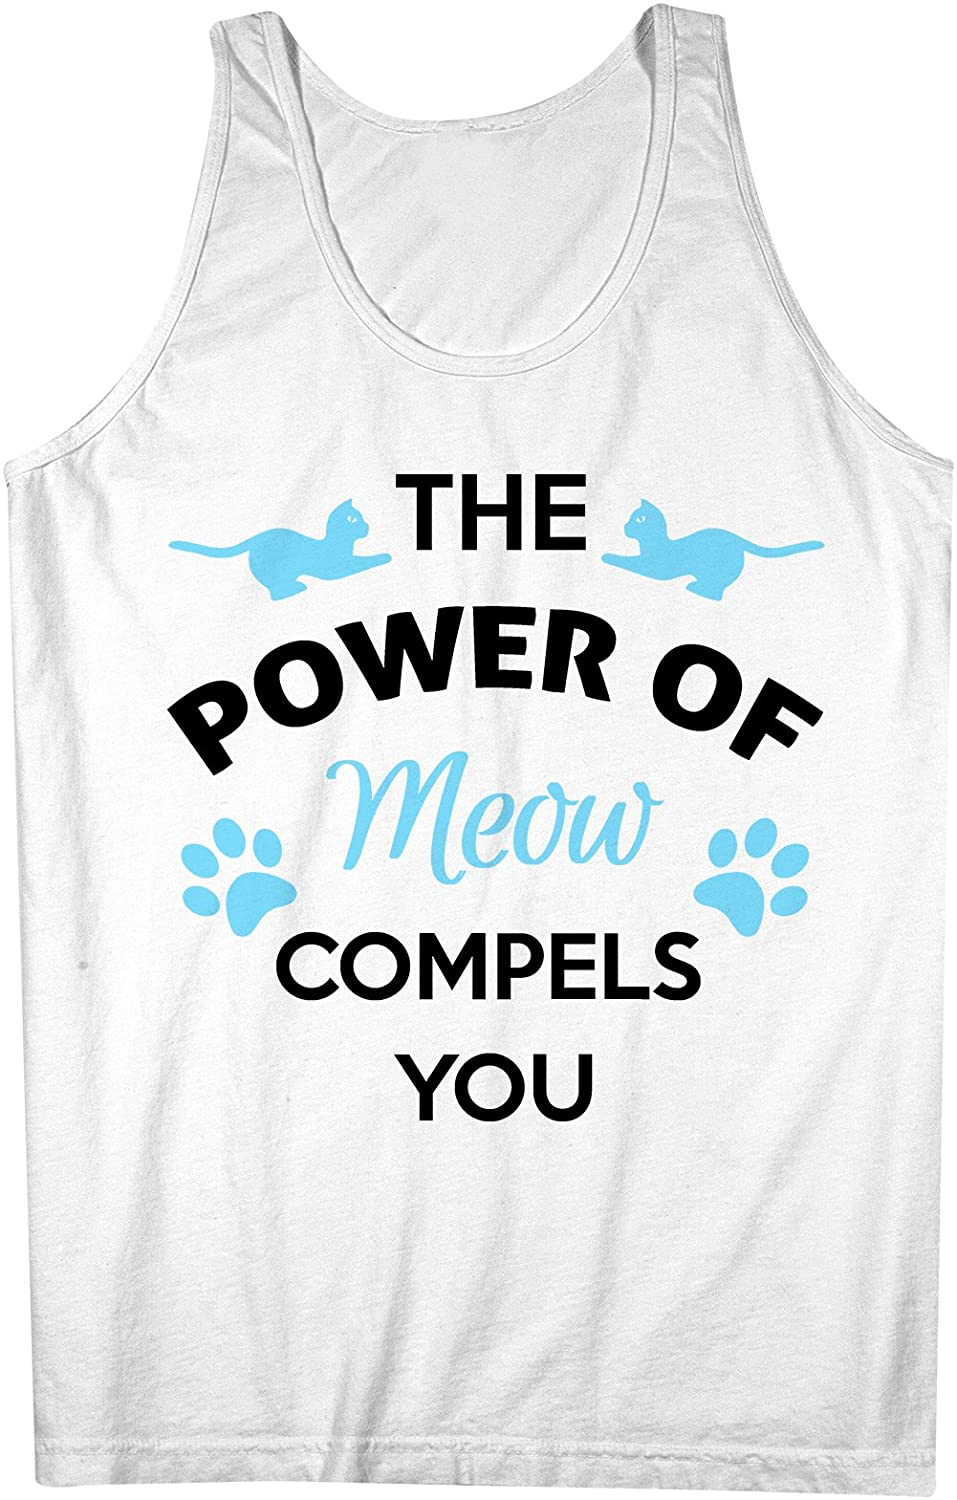 The Power Of Meow Compels You おかしいです Cat 男性用 Tank Top Sleeveless Shirt